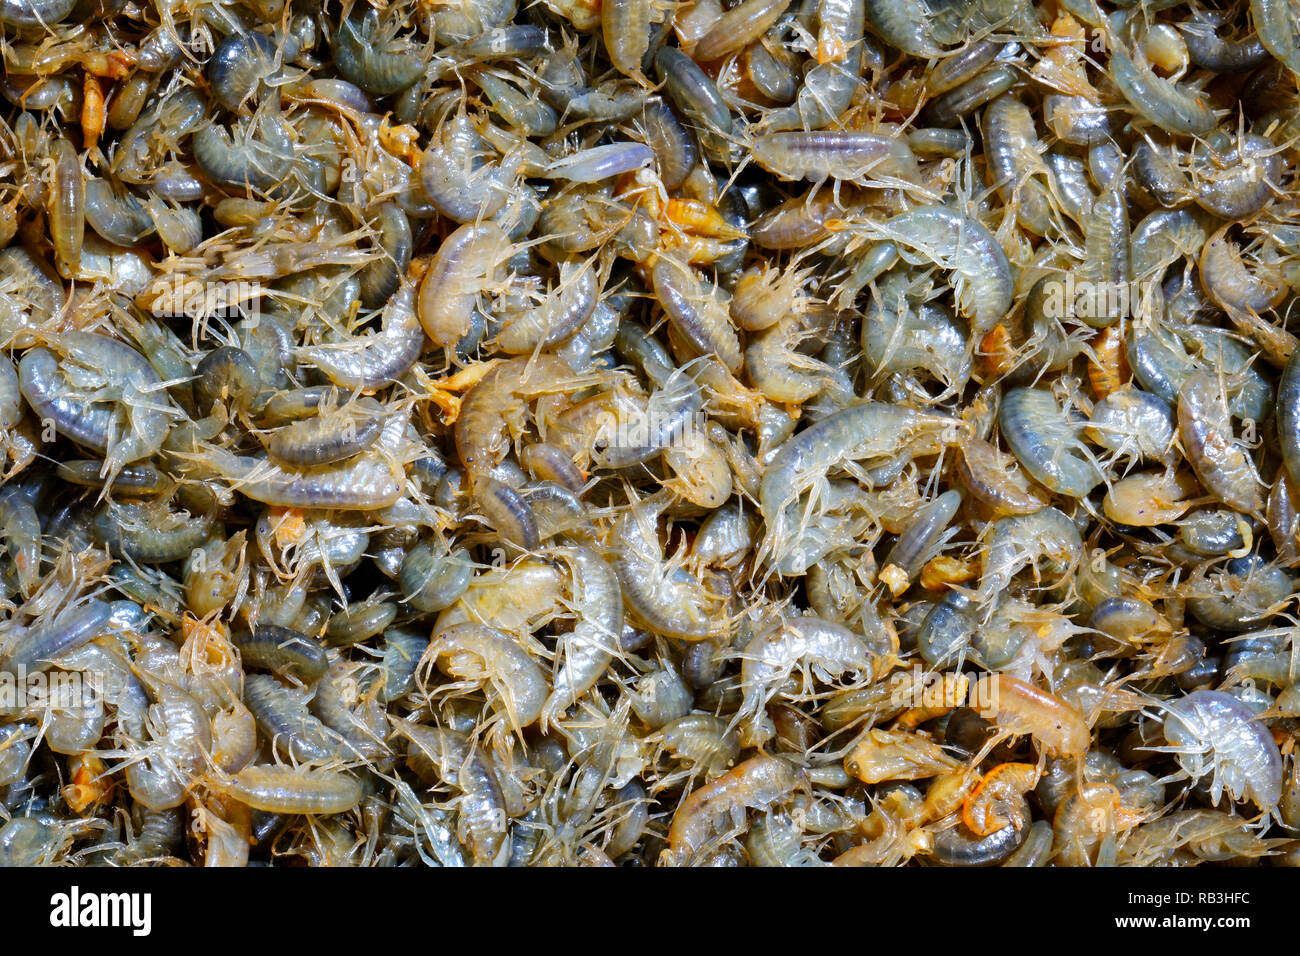 A lot of live crustaceans - amphipods as background. Excellent winter fishing lure - Stock Image